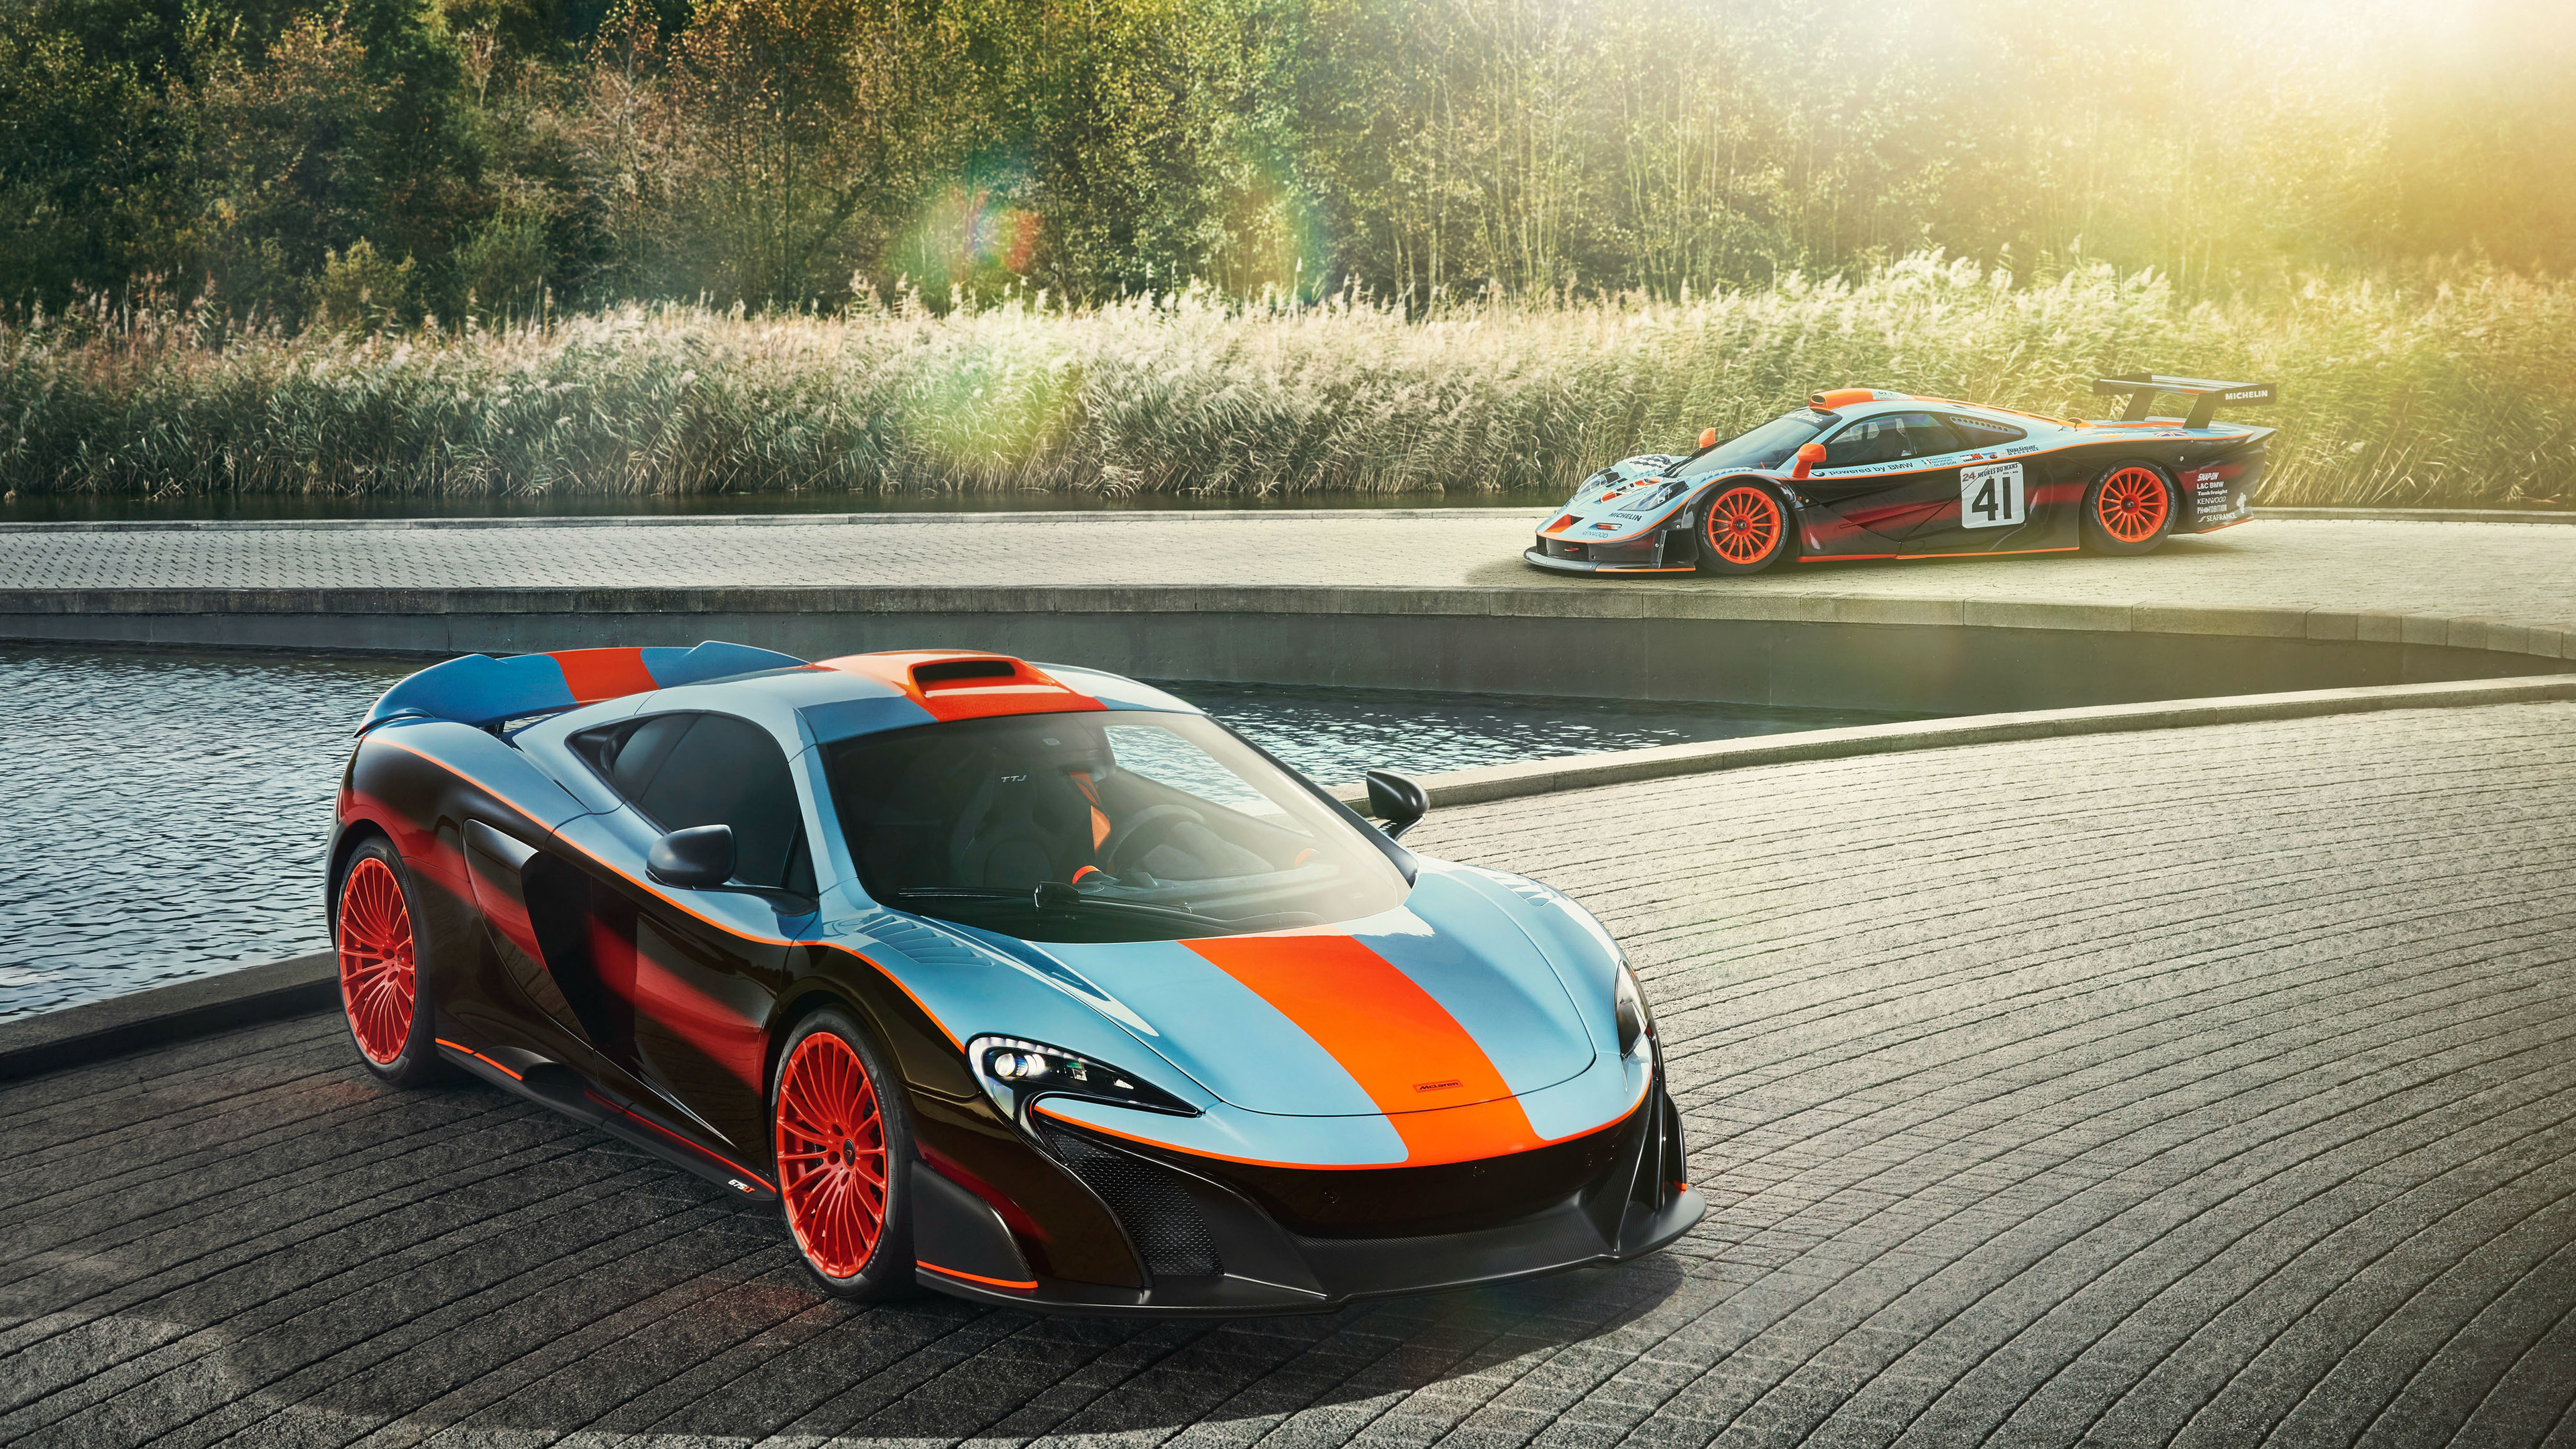 mclaren f1 mclaren mso 675lt gulf racing theme 2018 1539111598 - McLaren F1 McLaren MSO 675LT Gulf Racing Theme 2018 - mclaren wallpapers, mclaren mso 675 lt wallpapers, mclaren f1 wallpapers, hd-wallpapers, cars wallpapers, 4k-wallpapers, 2018 cars wallpapers